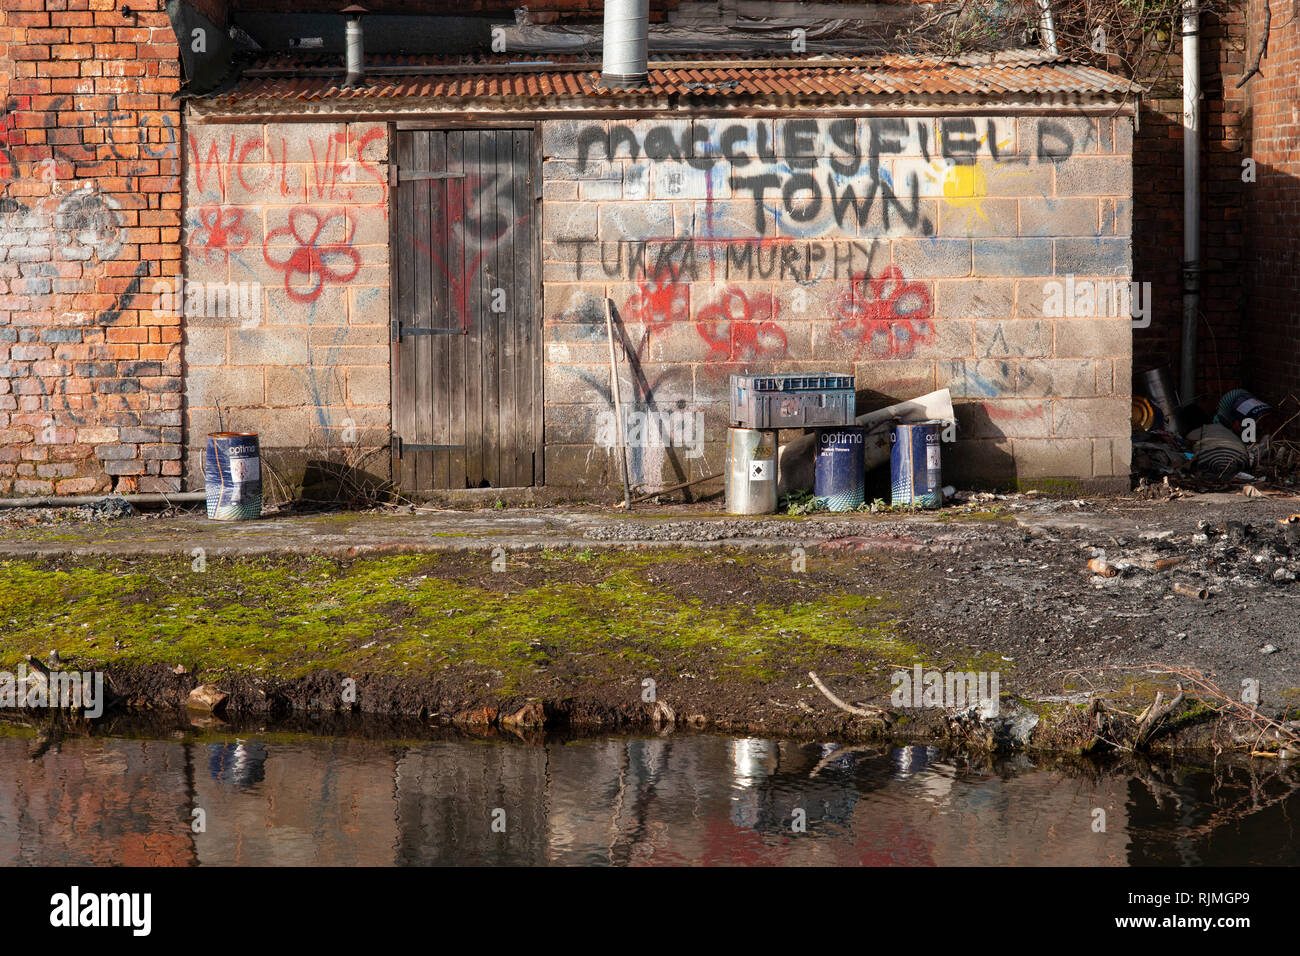 Walsall canal towpath within a short walk of the New Art Gallery, Walsall - Stock Image